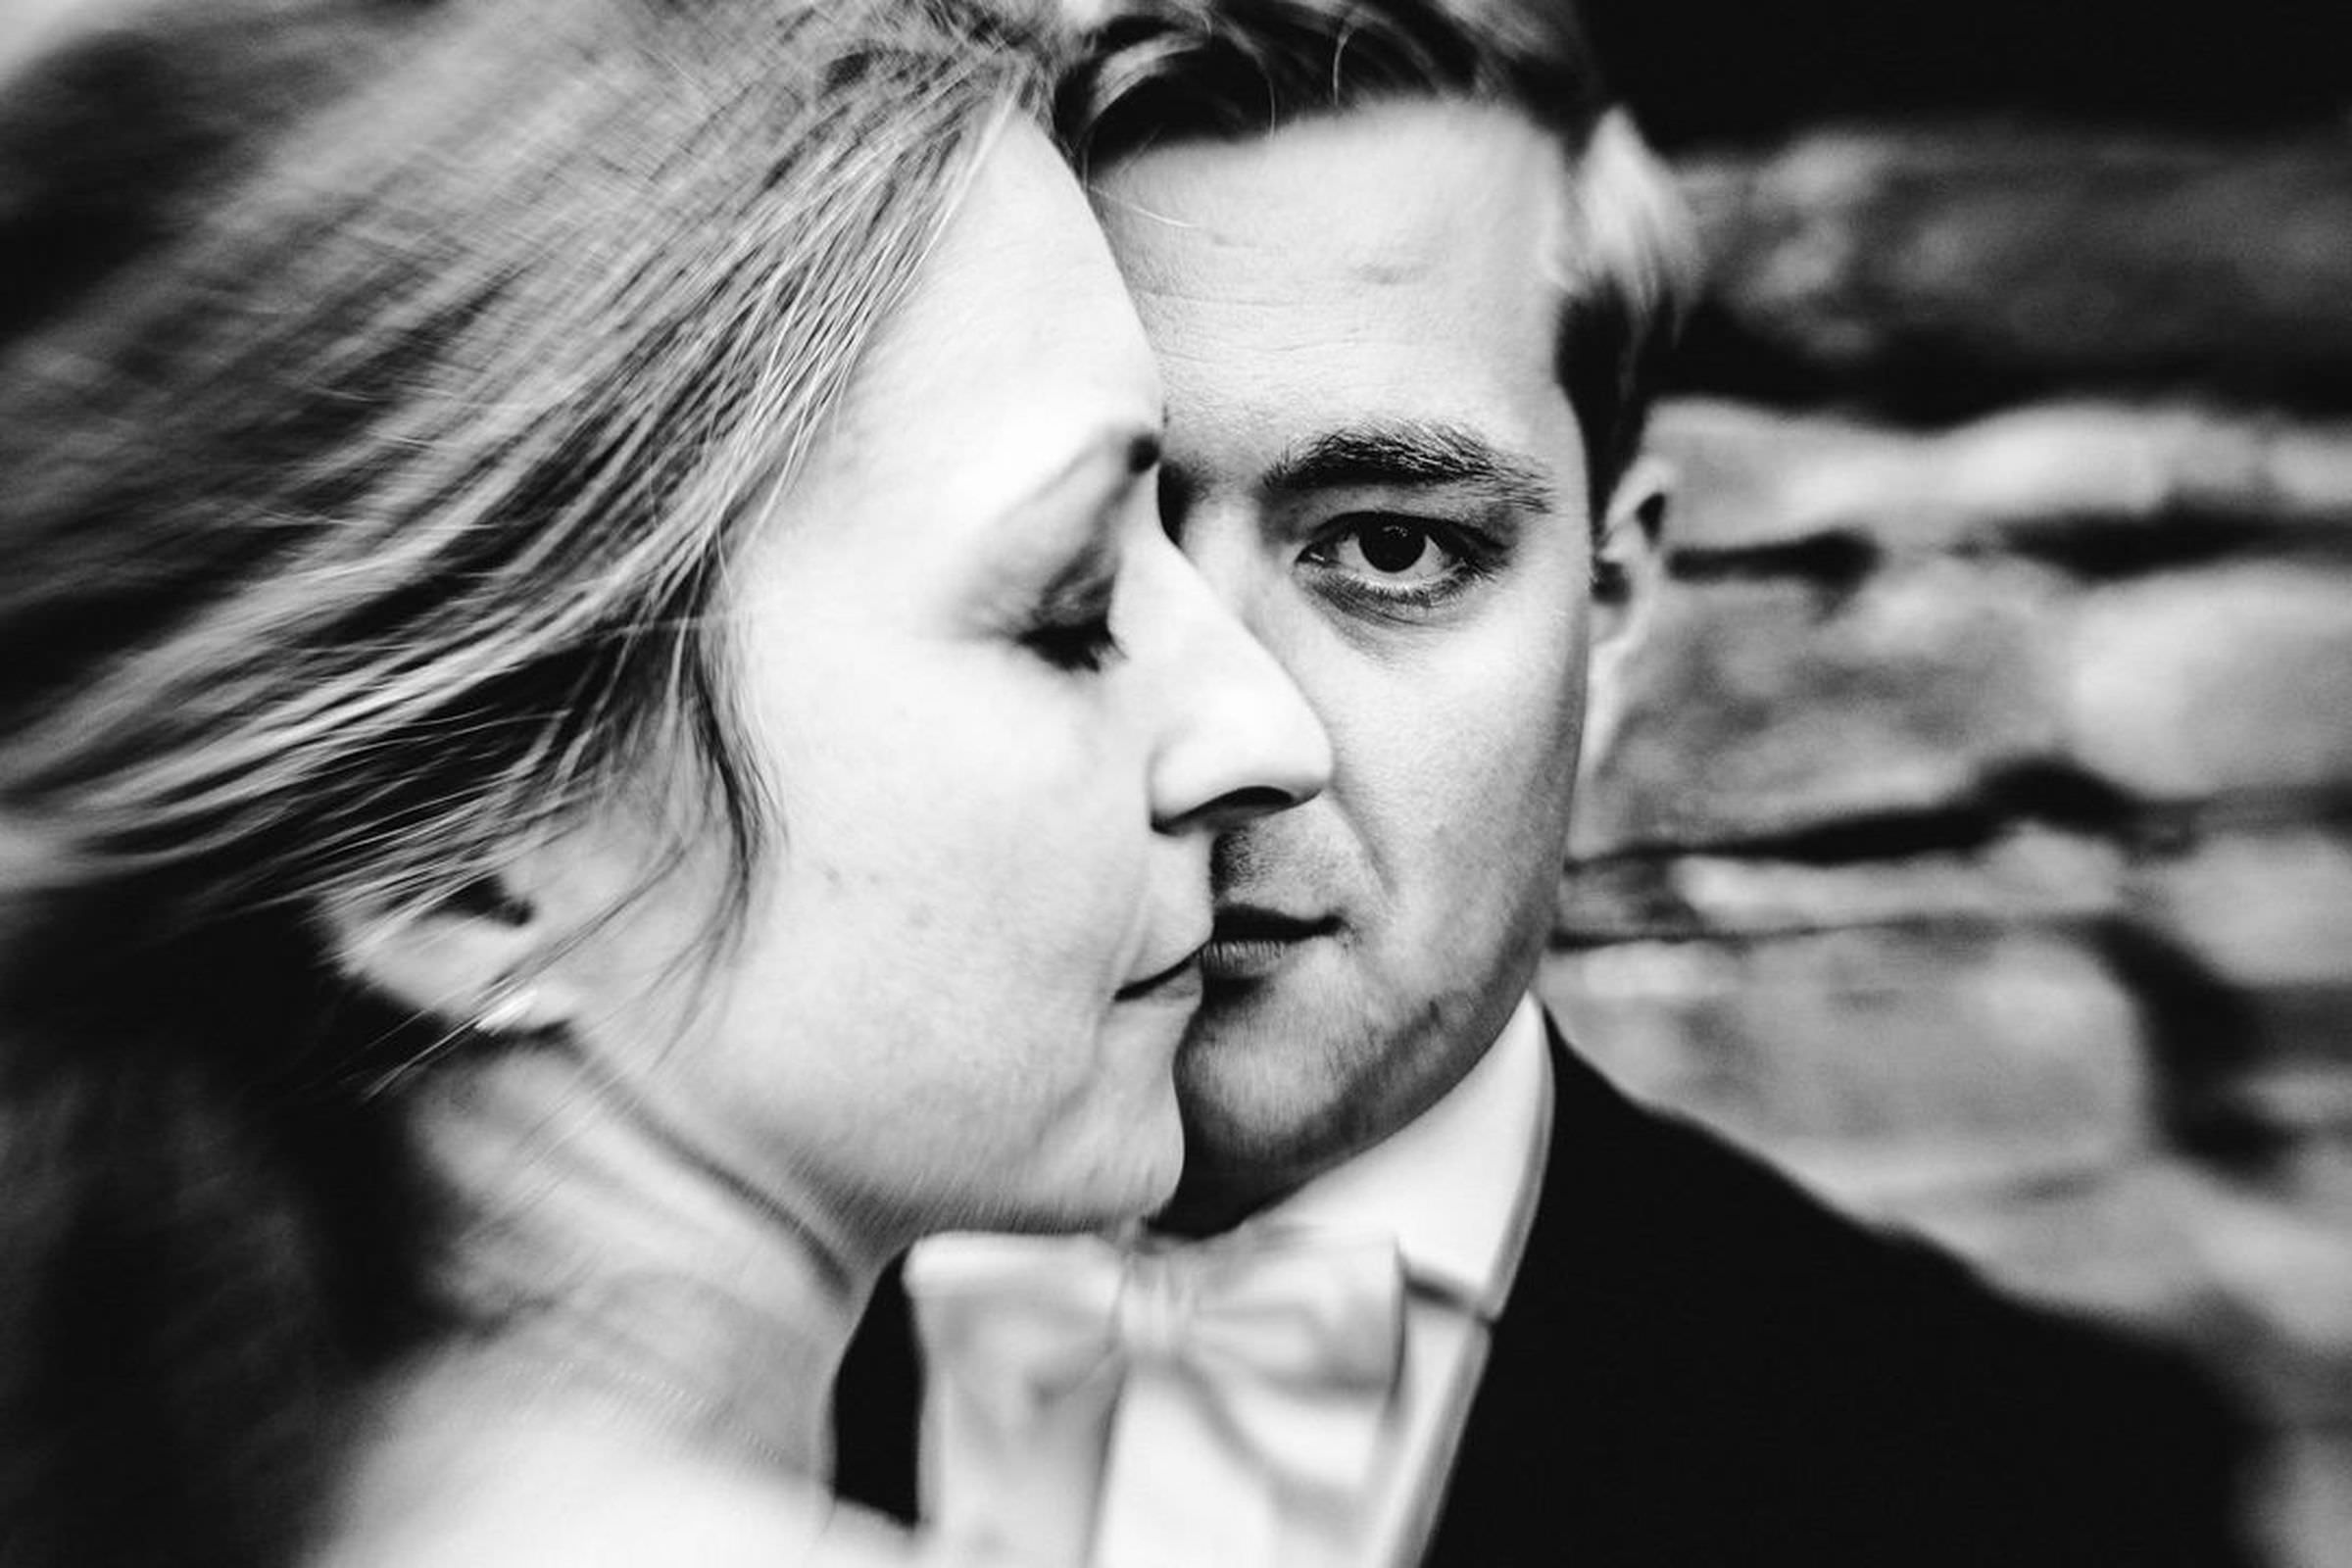 Black and white photo of groom with bride in foreground by FineArt Weddings Photography from Germany